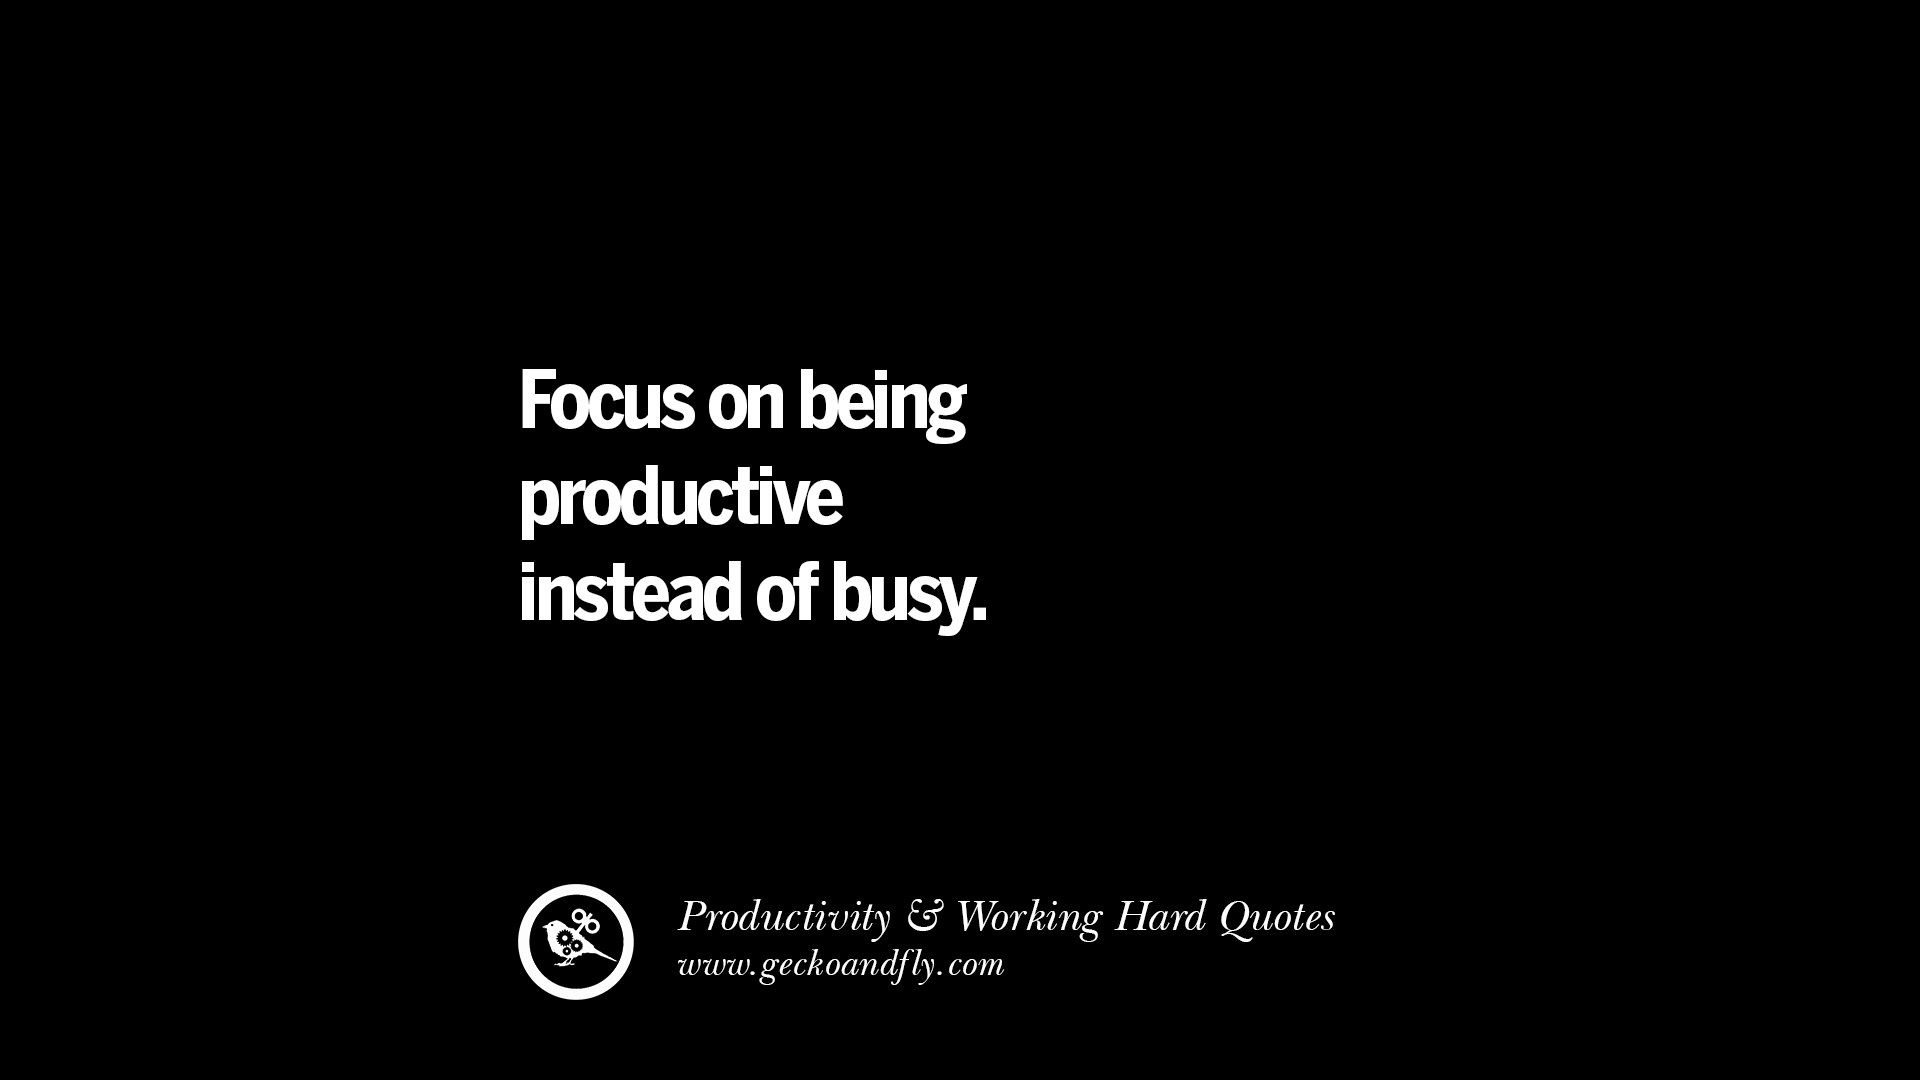 Inspriational Quotes Wallpaper For Mac 30 Uplifting Quotes On Increasing Productivity And Working